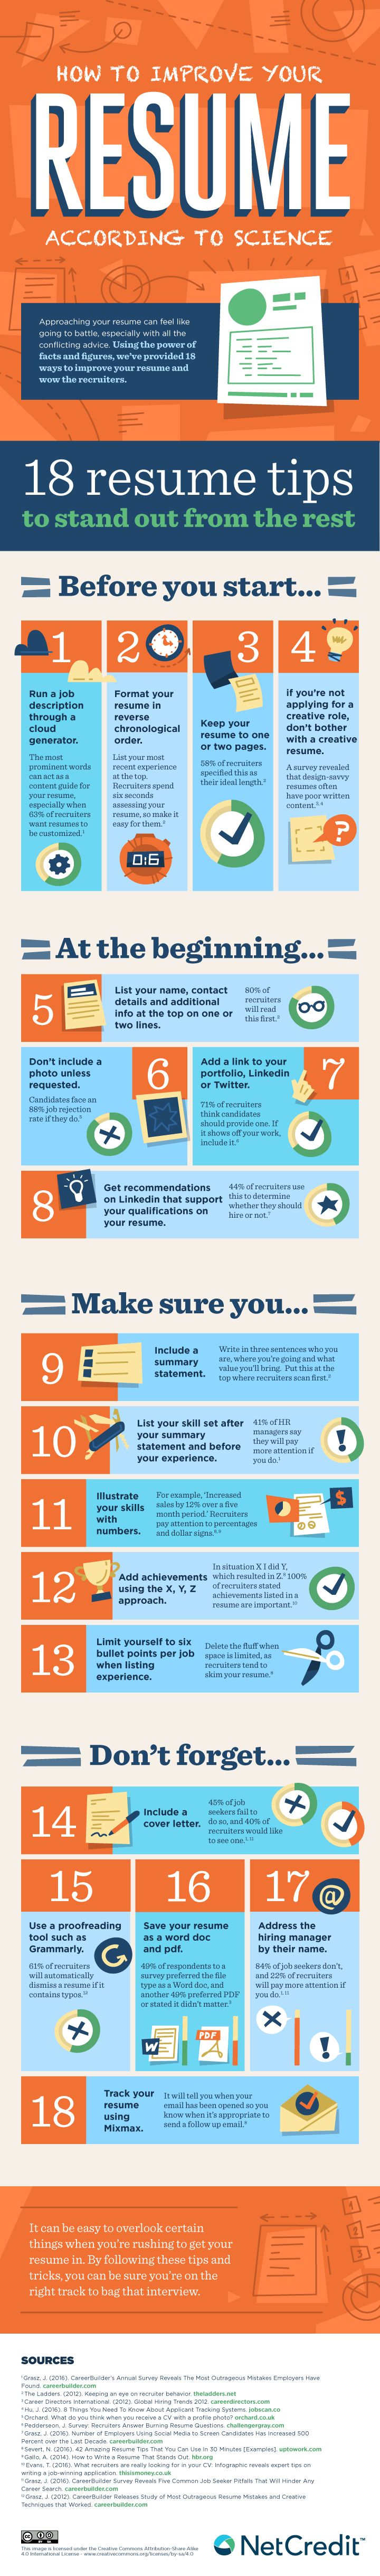 an infographic about creating a perfect resume according to science